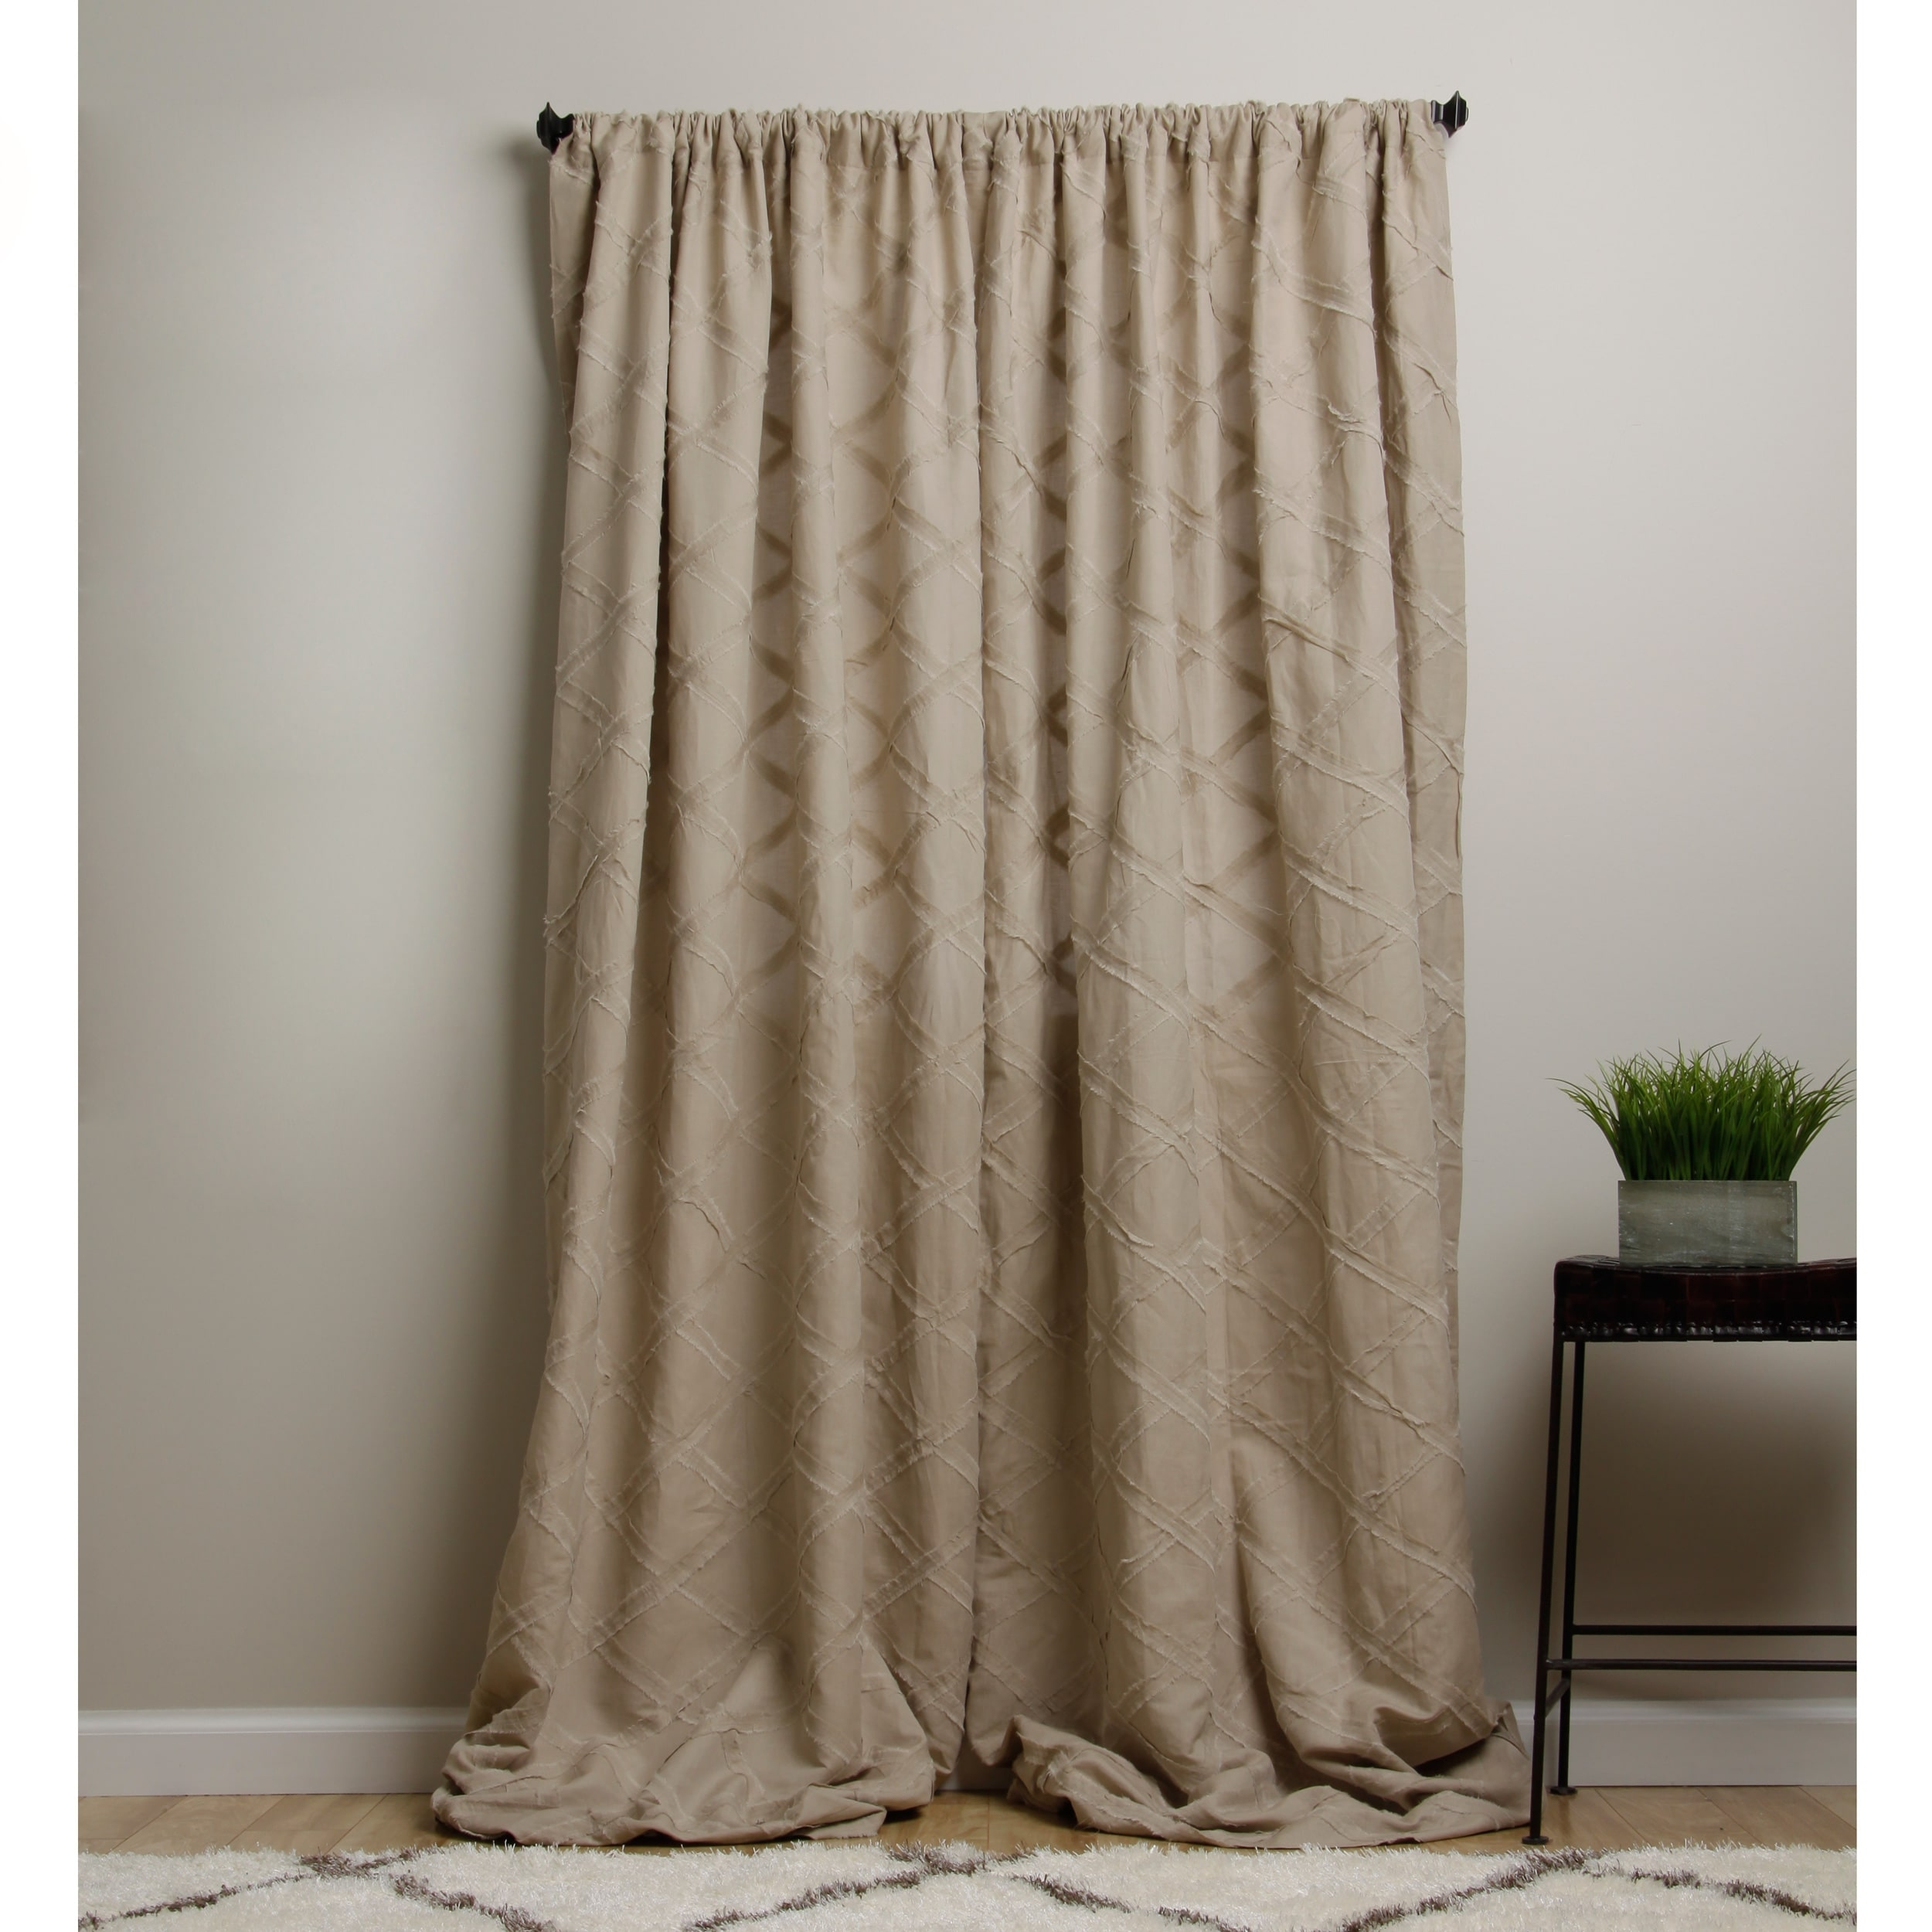 Where To Buy Inch Curtains Eyelet Curtain Curtain Ideas Beautiful With 96 Inches Long Curtains (Image 24 of 25)